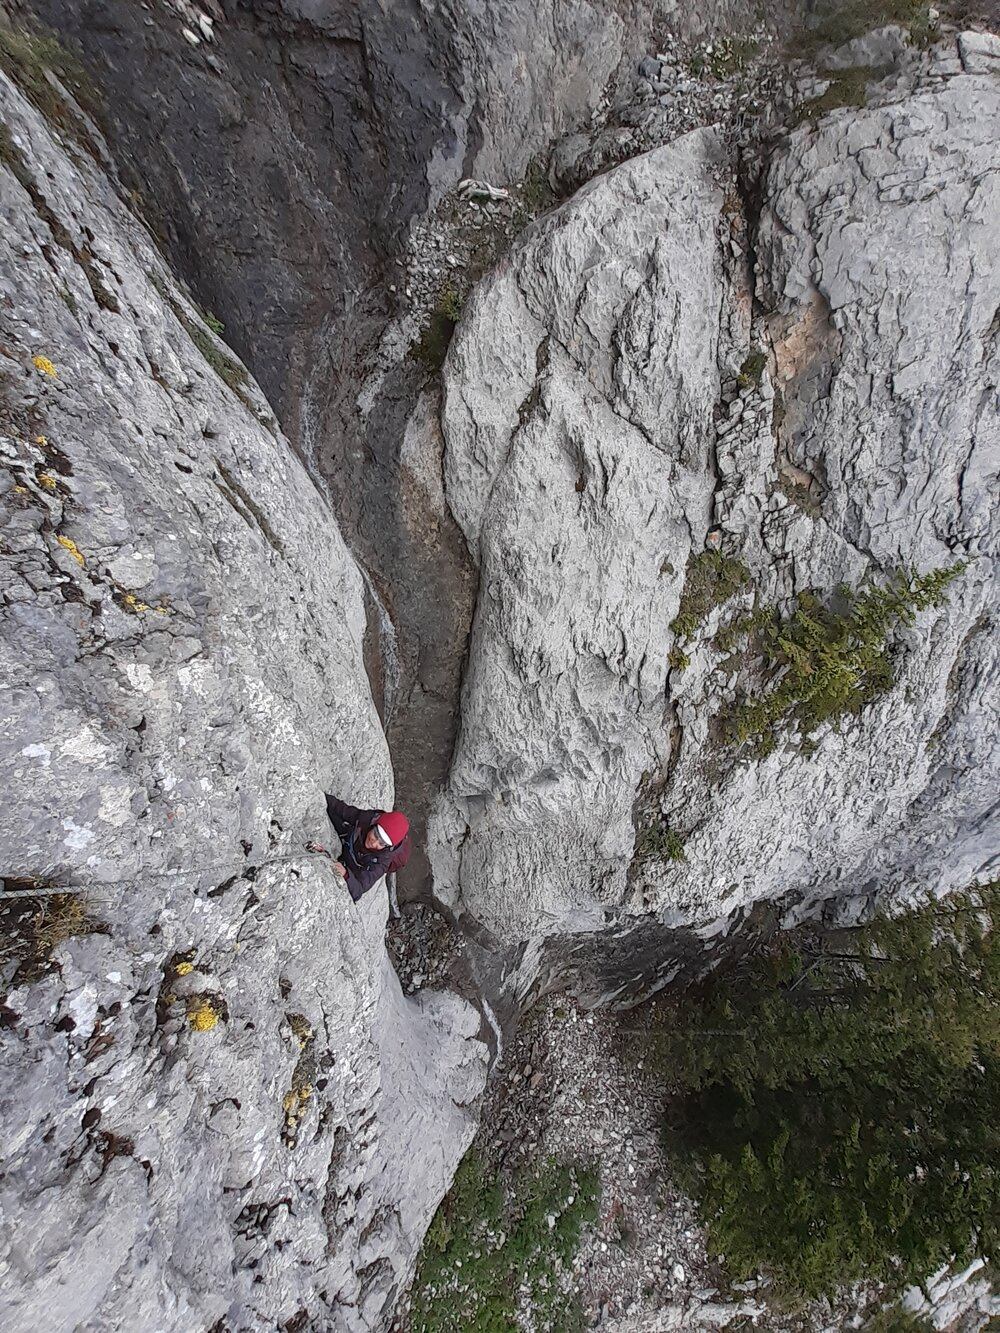 Janet Welch on Pitch 10 of Star Struck